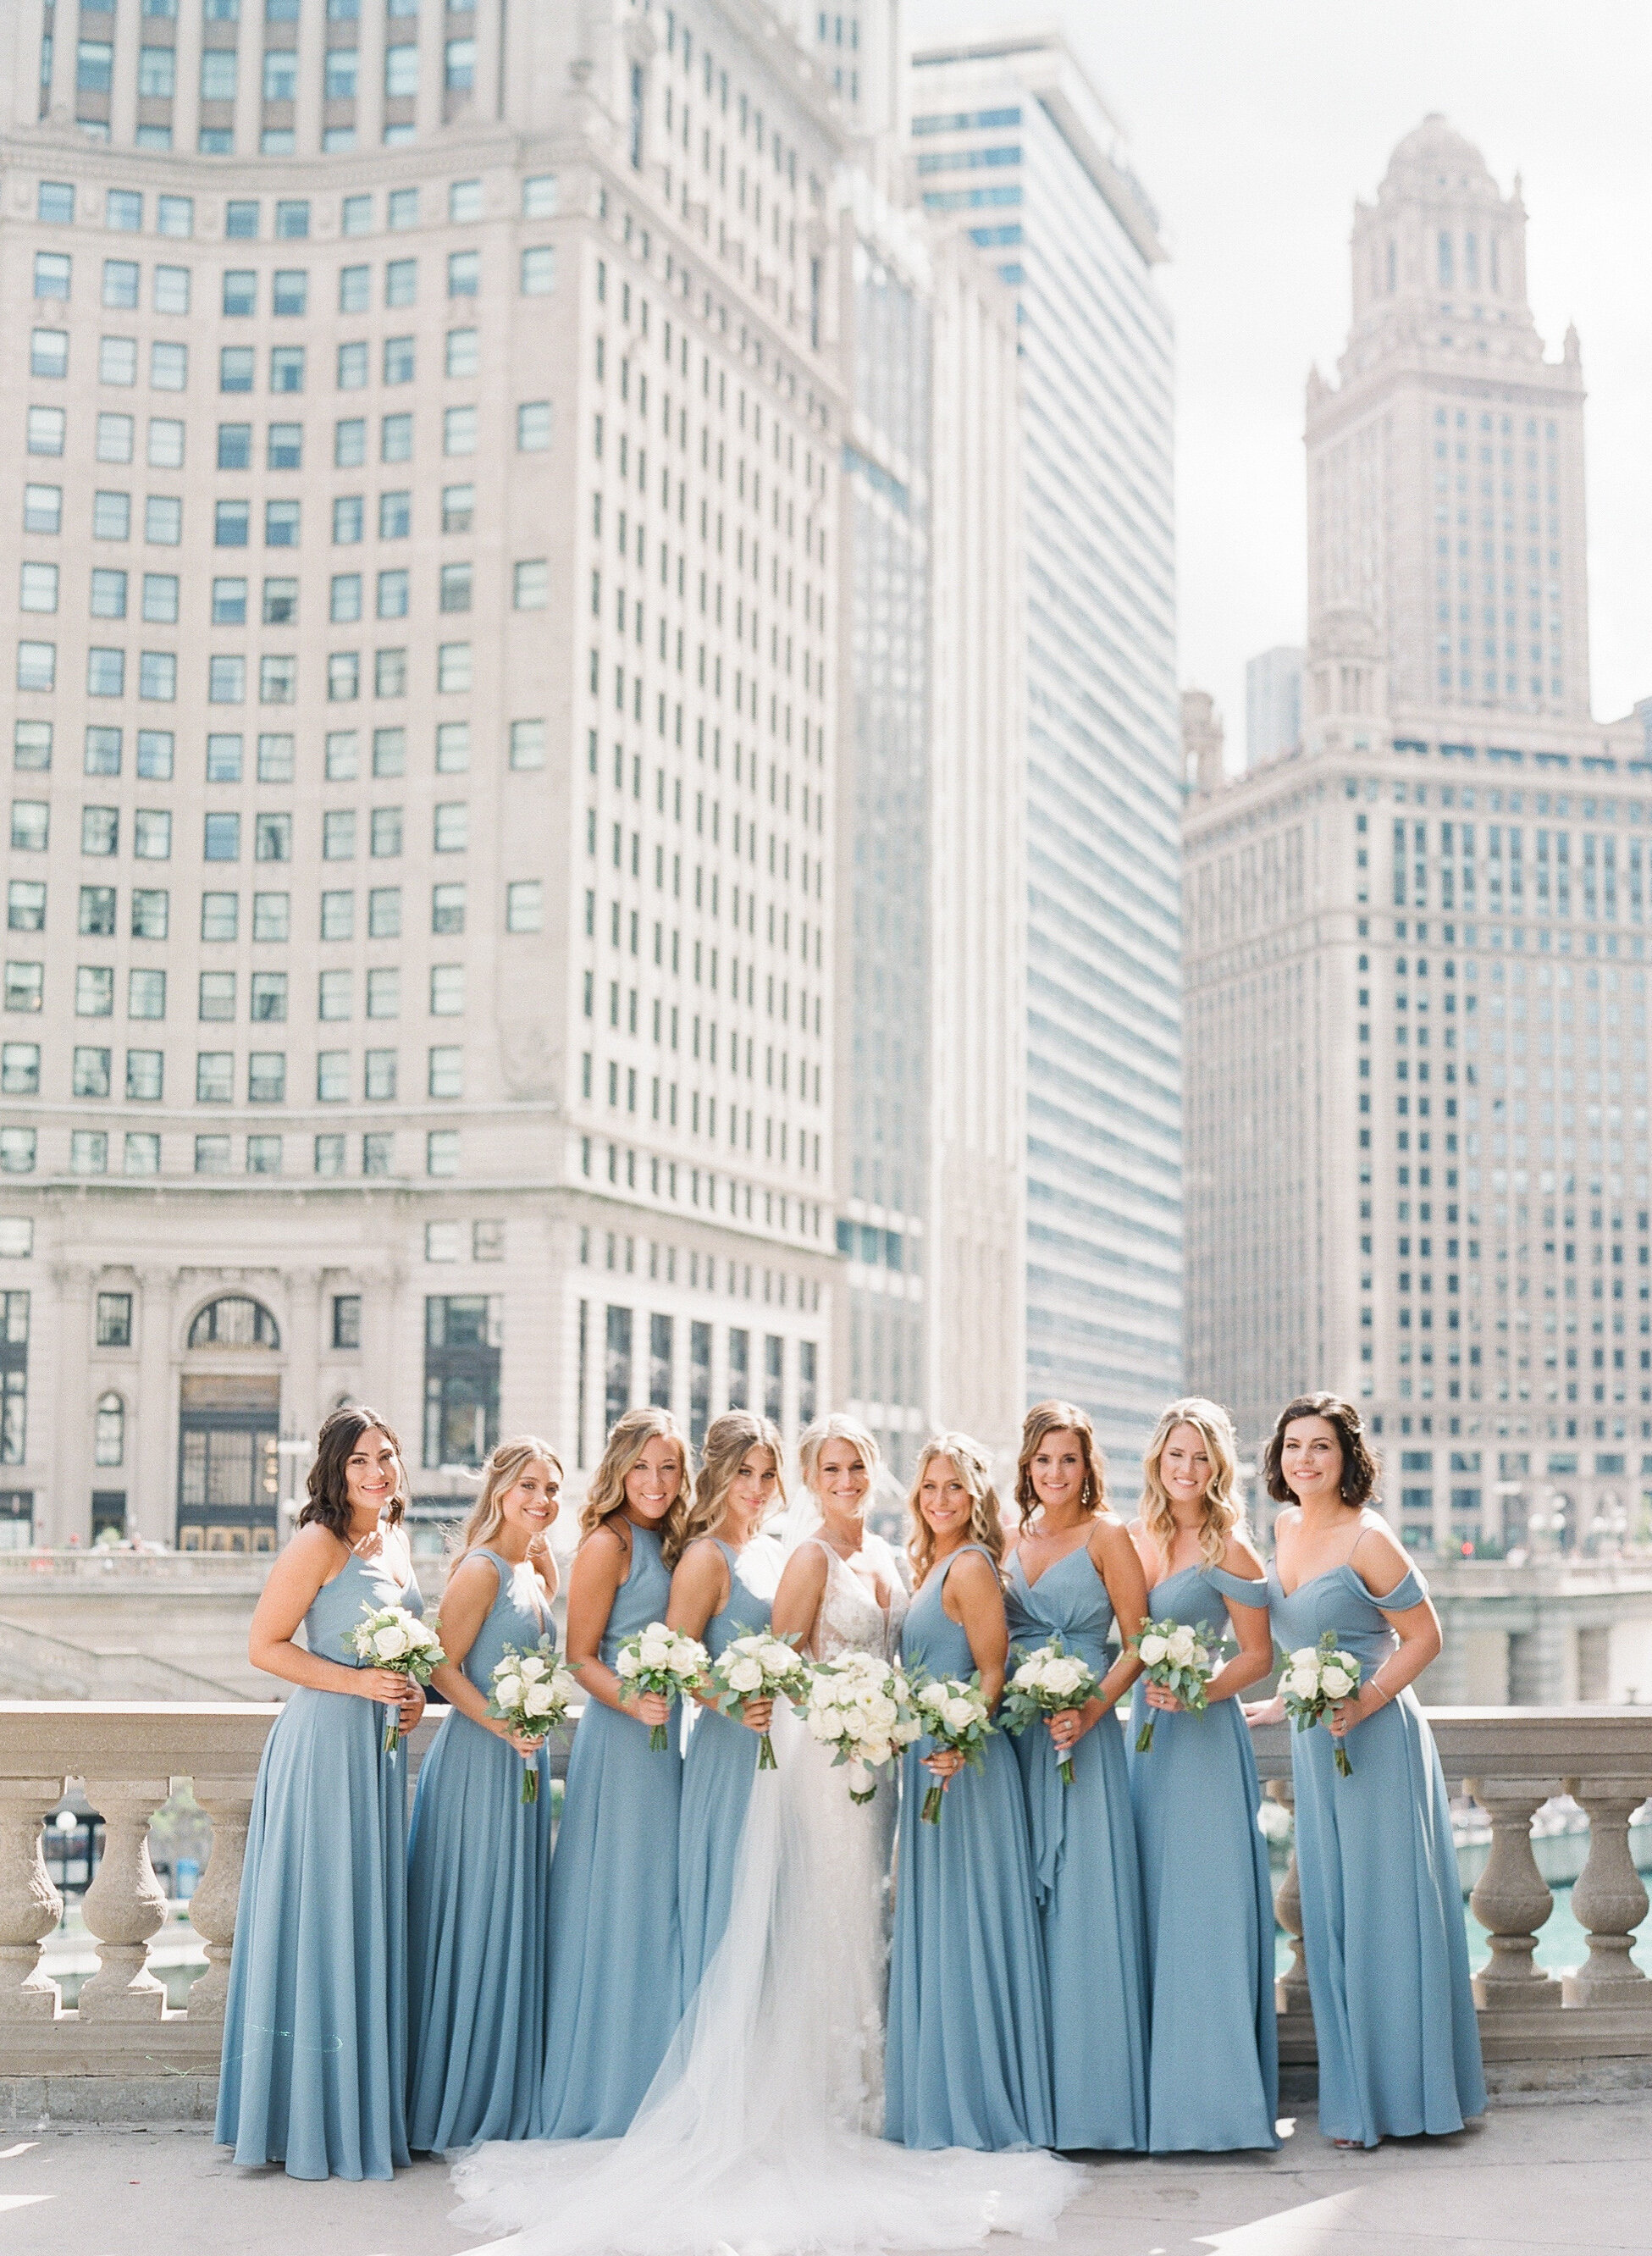 Bonphotage Chicago Fine Art Film Wedding Photography